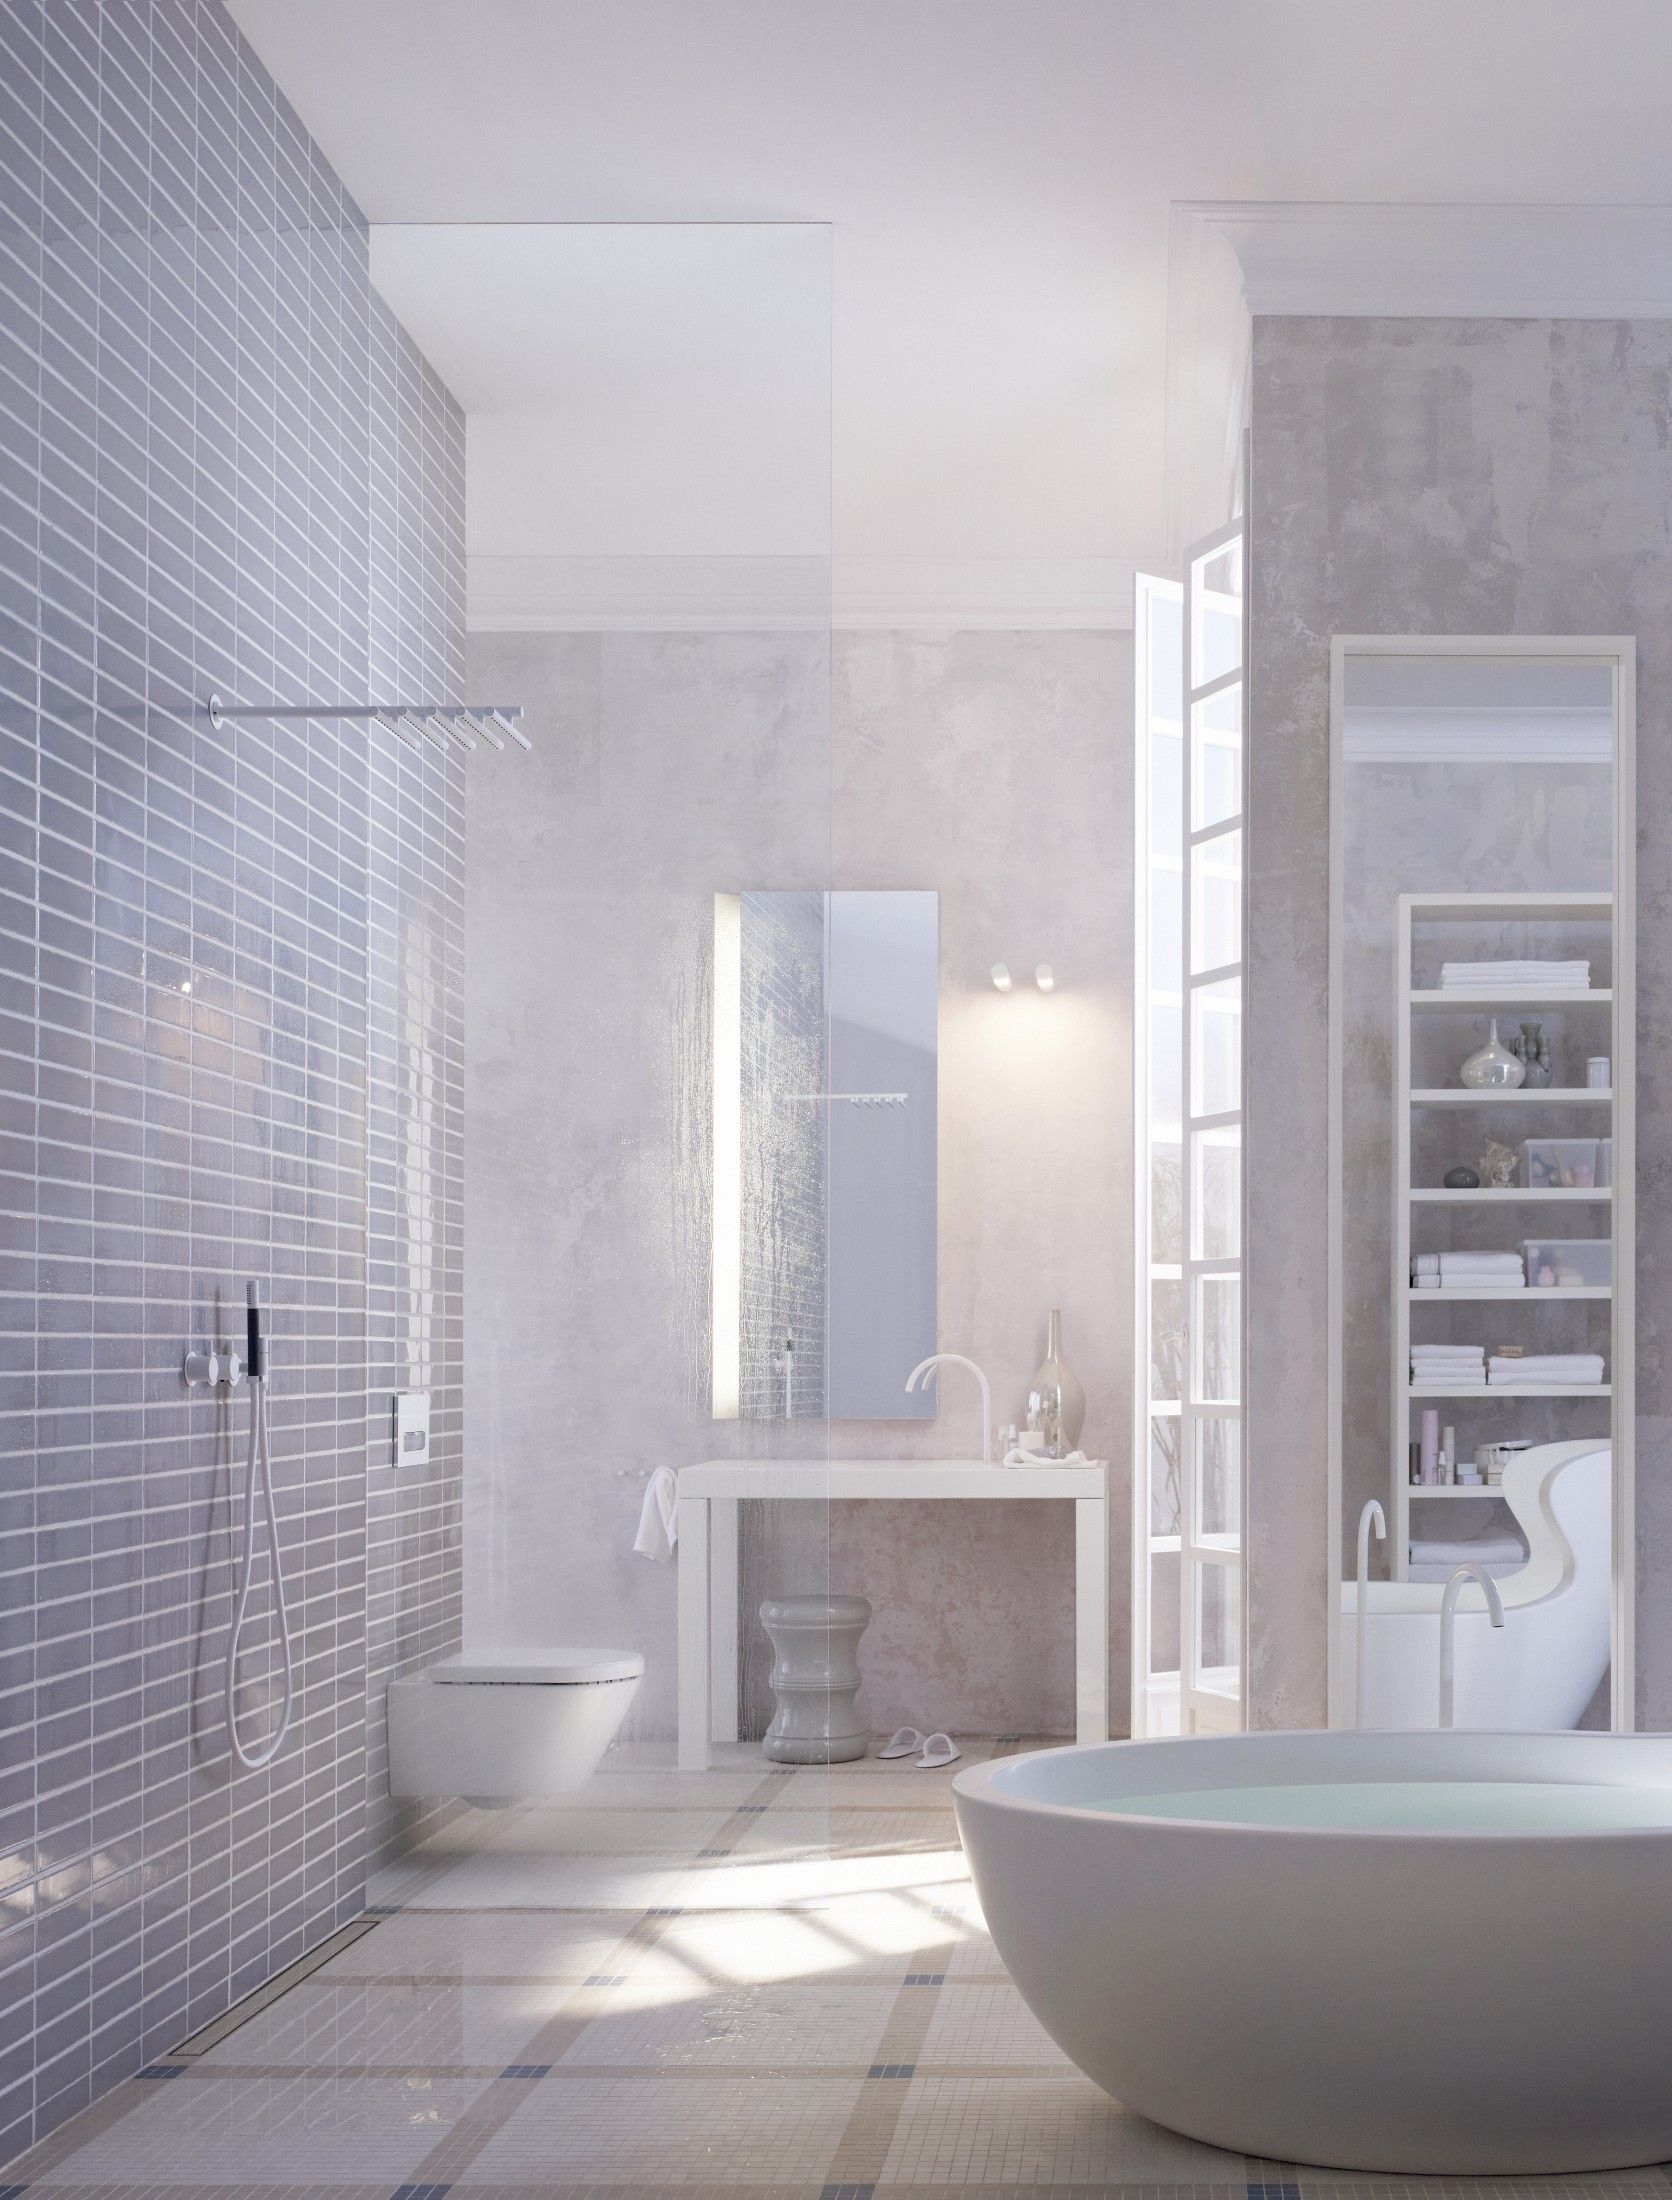 Give Your Bathroom More E By Utilizing A Geberit In Wall Toilet System Sleek And Serene For Any The House